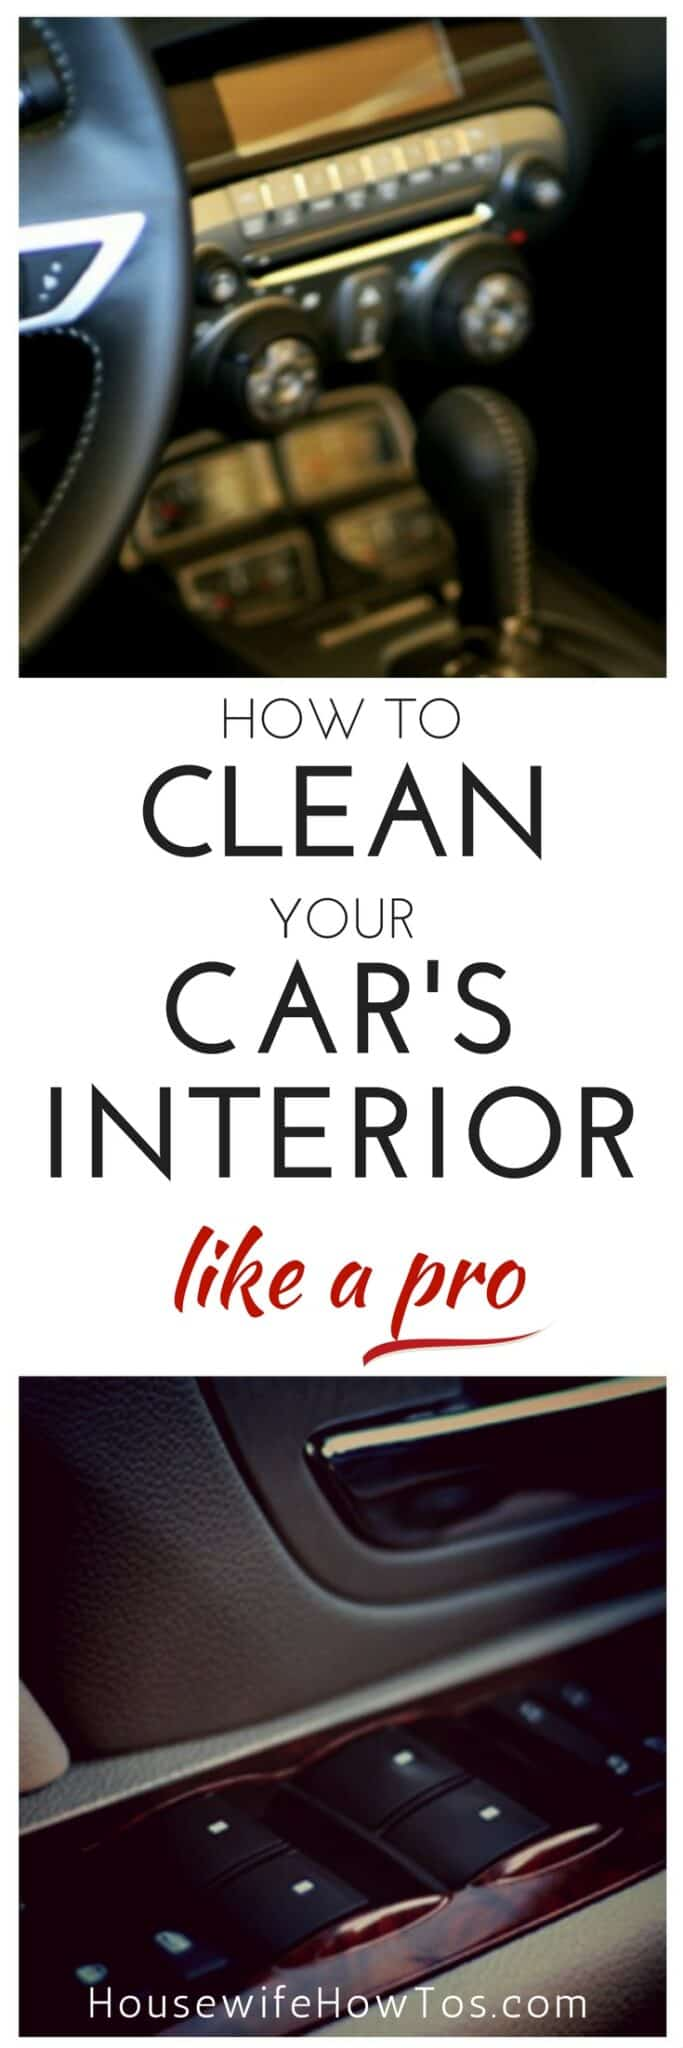 How To Clean Your Car's Interior Like A Pro | Get a spotless car without spending a fortune. #cleaningroutine #cleaninghacks